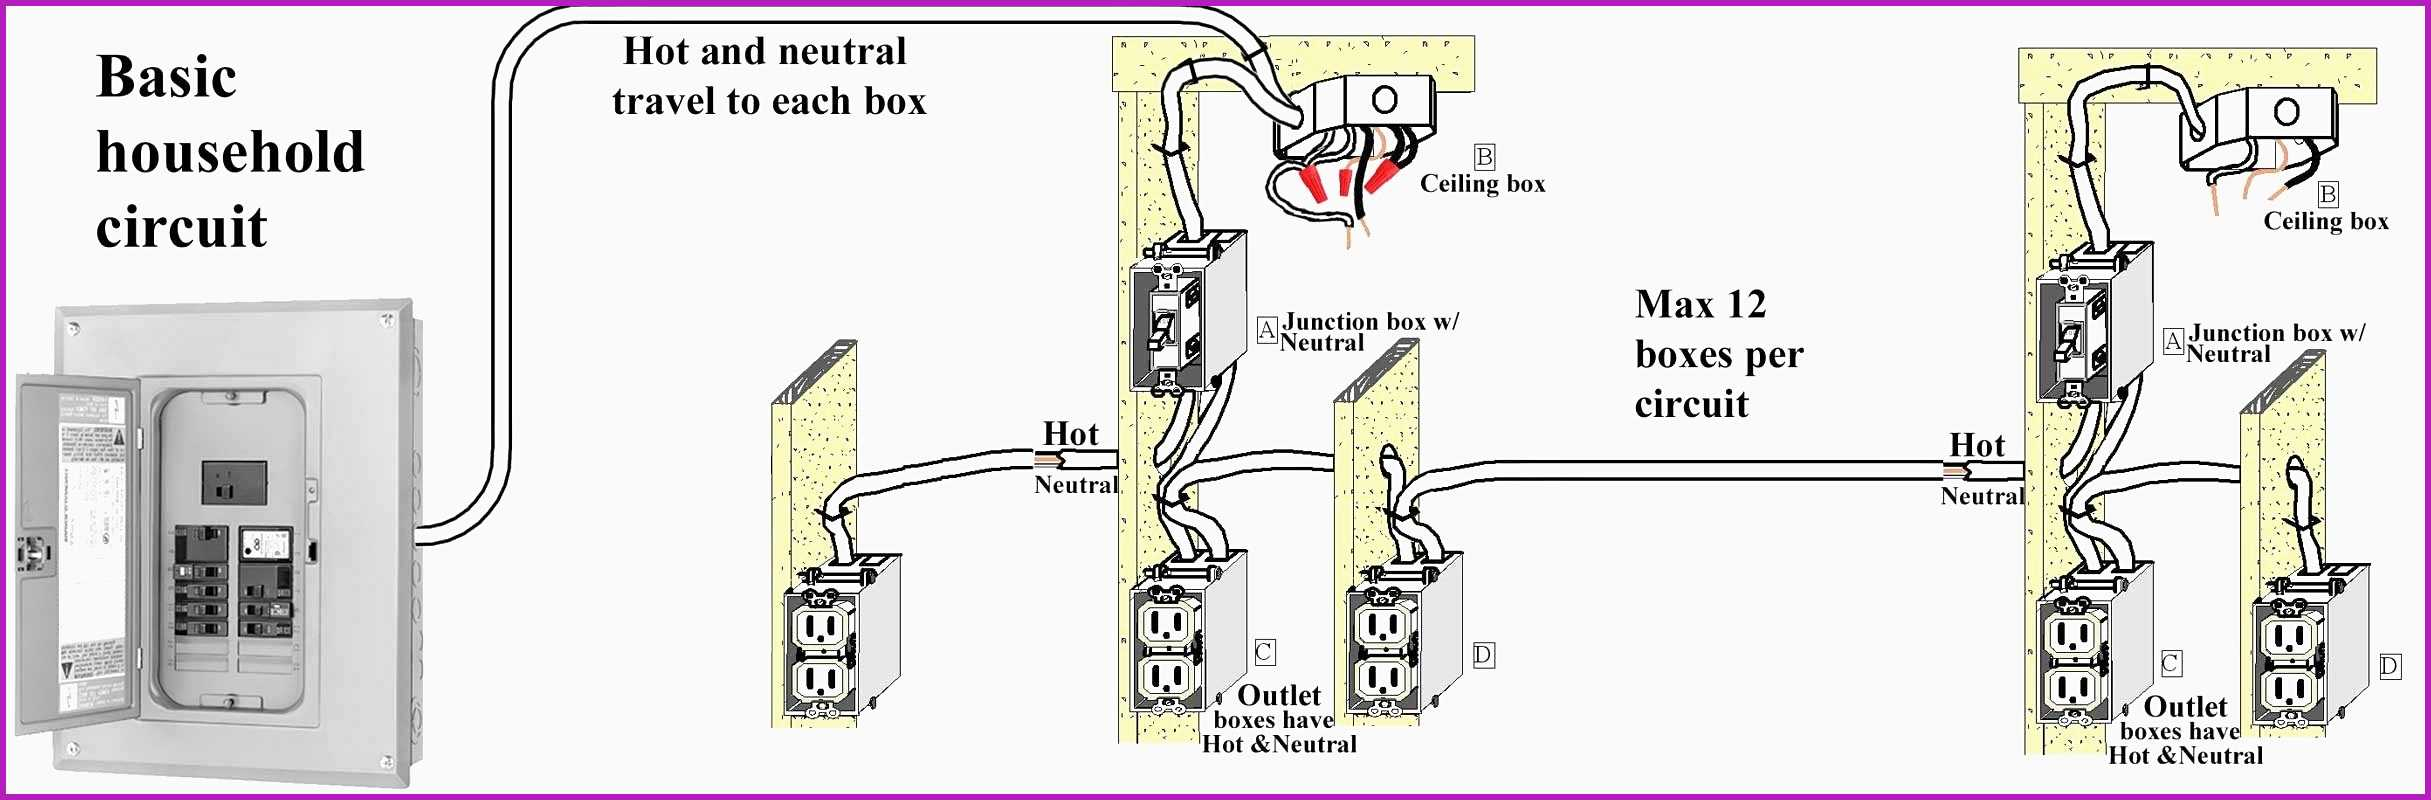 Basic Electrical Wiring Diagram Wires | Best Wiring Library - Simple Wiring Diagram